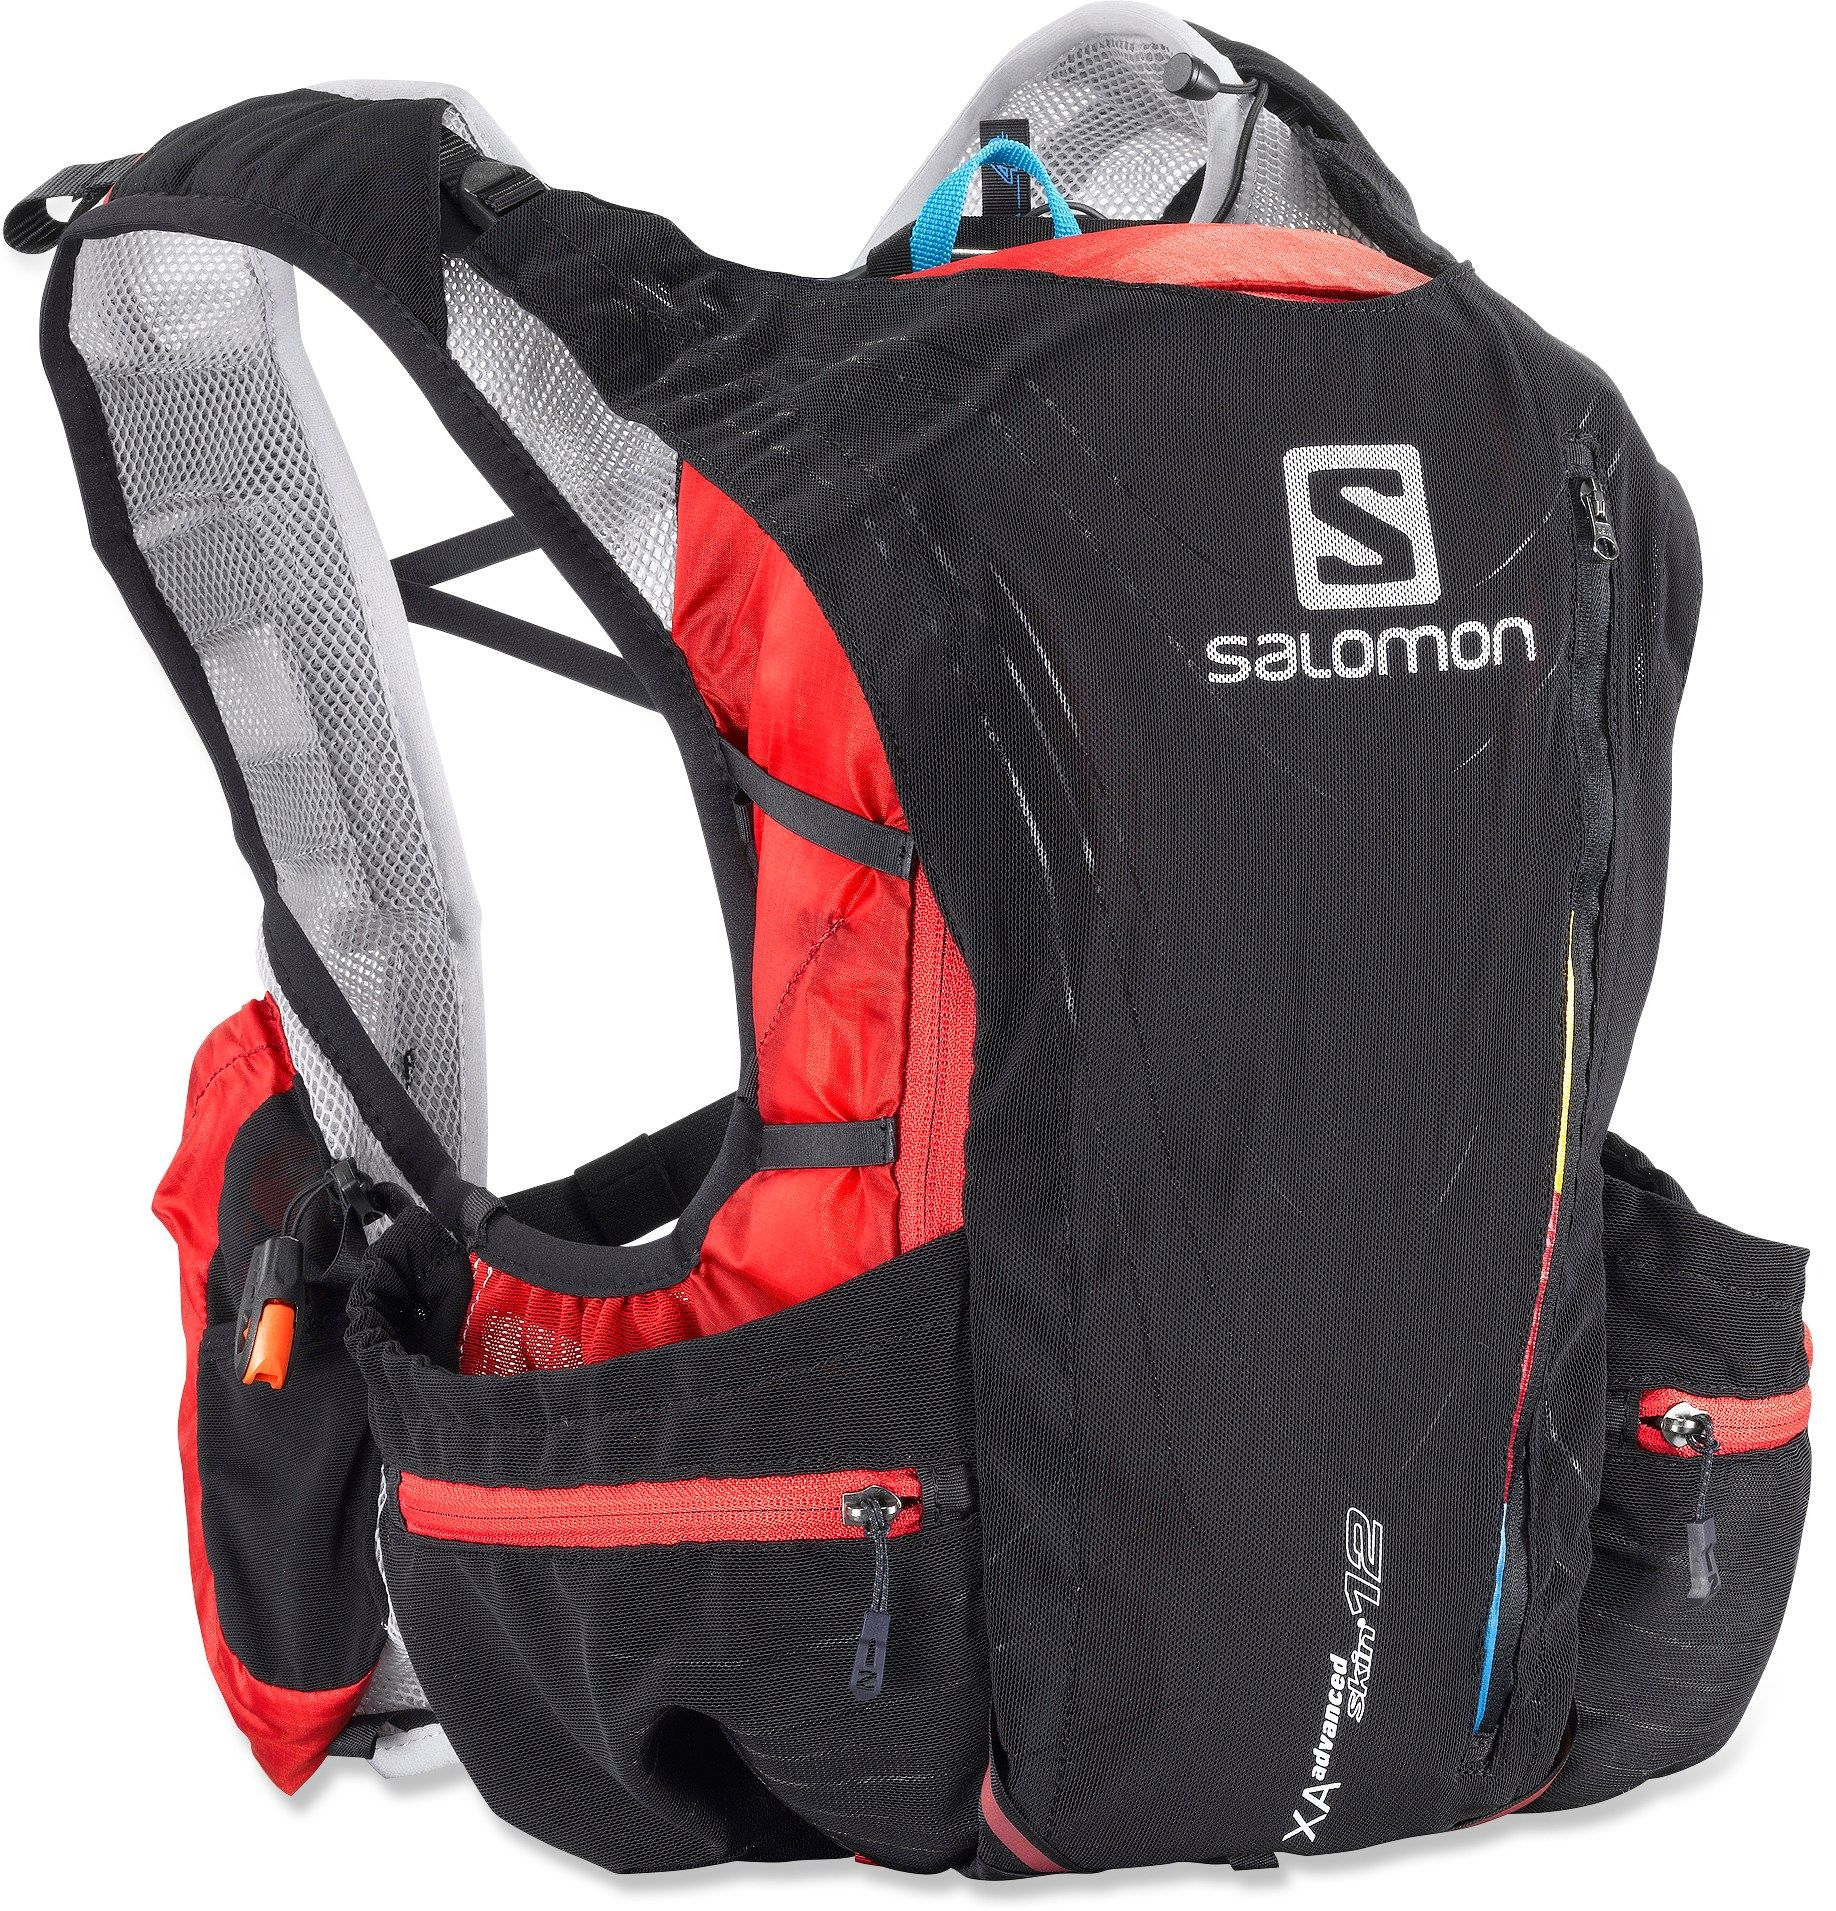 Salomon Advanced Skin S Lab 12 Set Hydration Pack Rei Co Op Running Running Equipment Running Pack